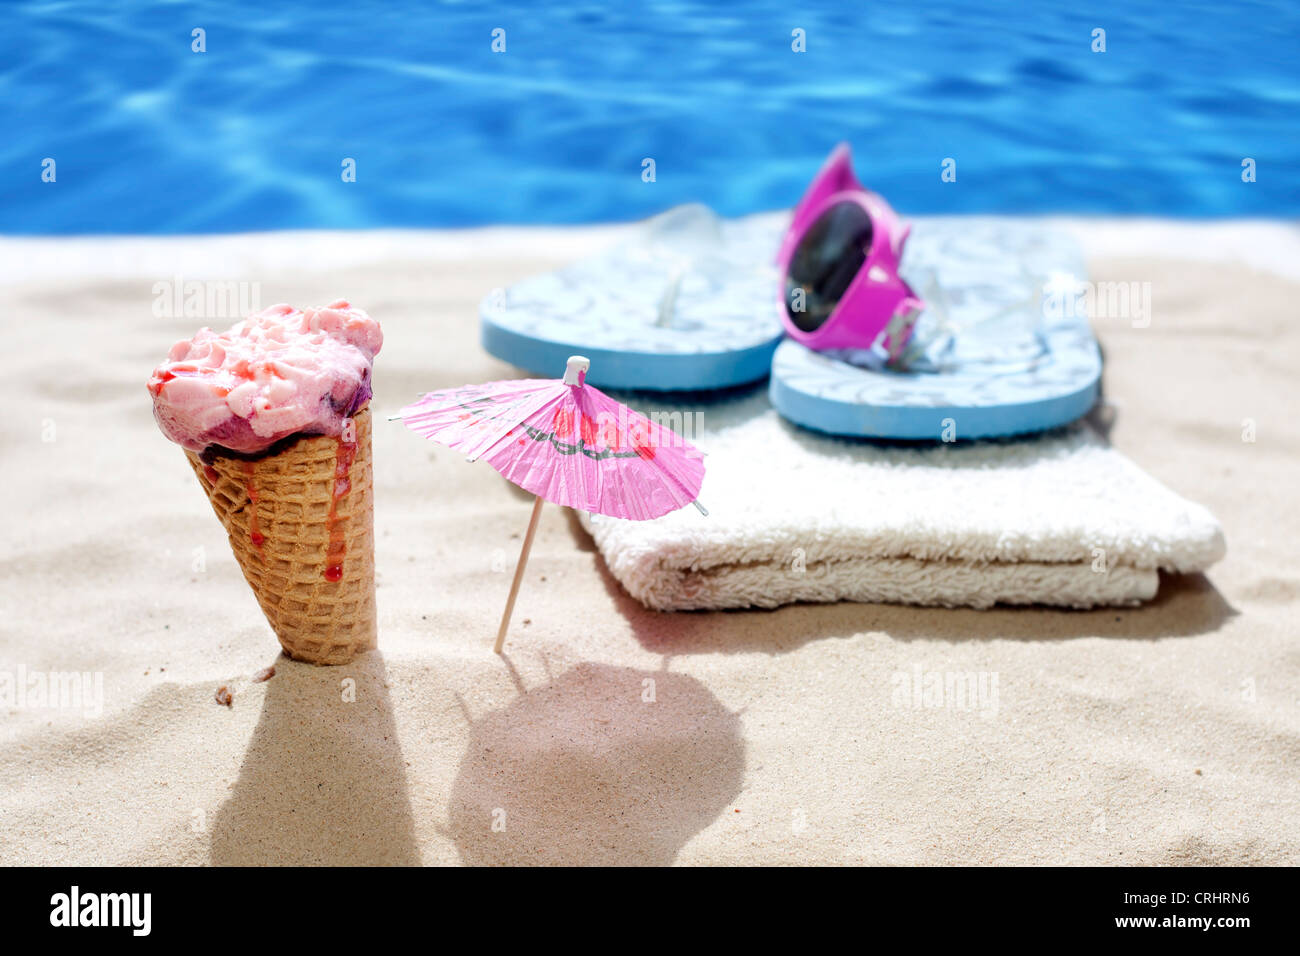 ice cream on beach holiday hot day concept - Stock Image